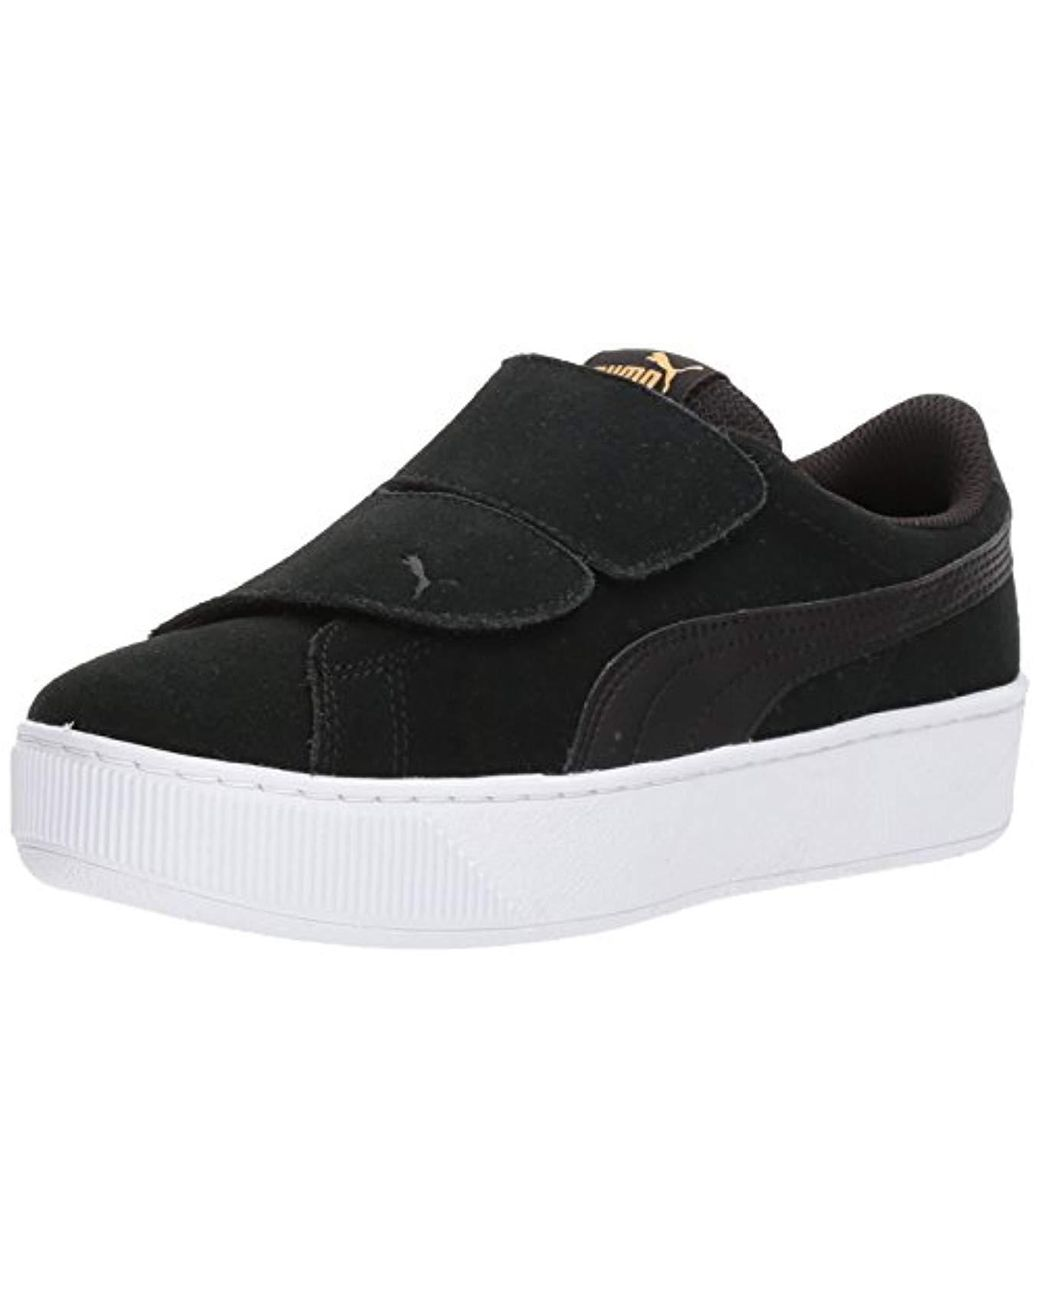 finest selection 957a0 a14be Women's Black Vikky Platform Velcro Sneaker